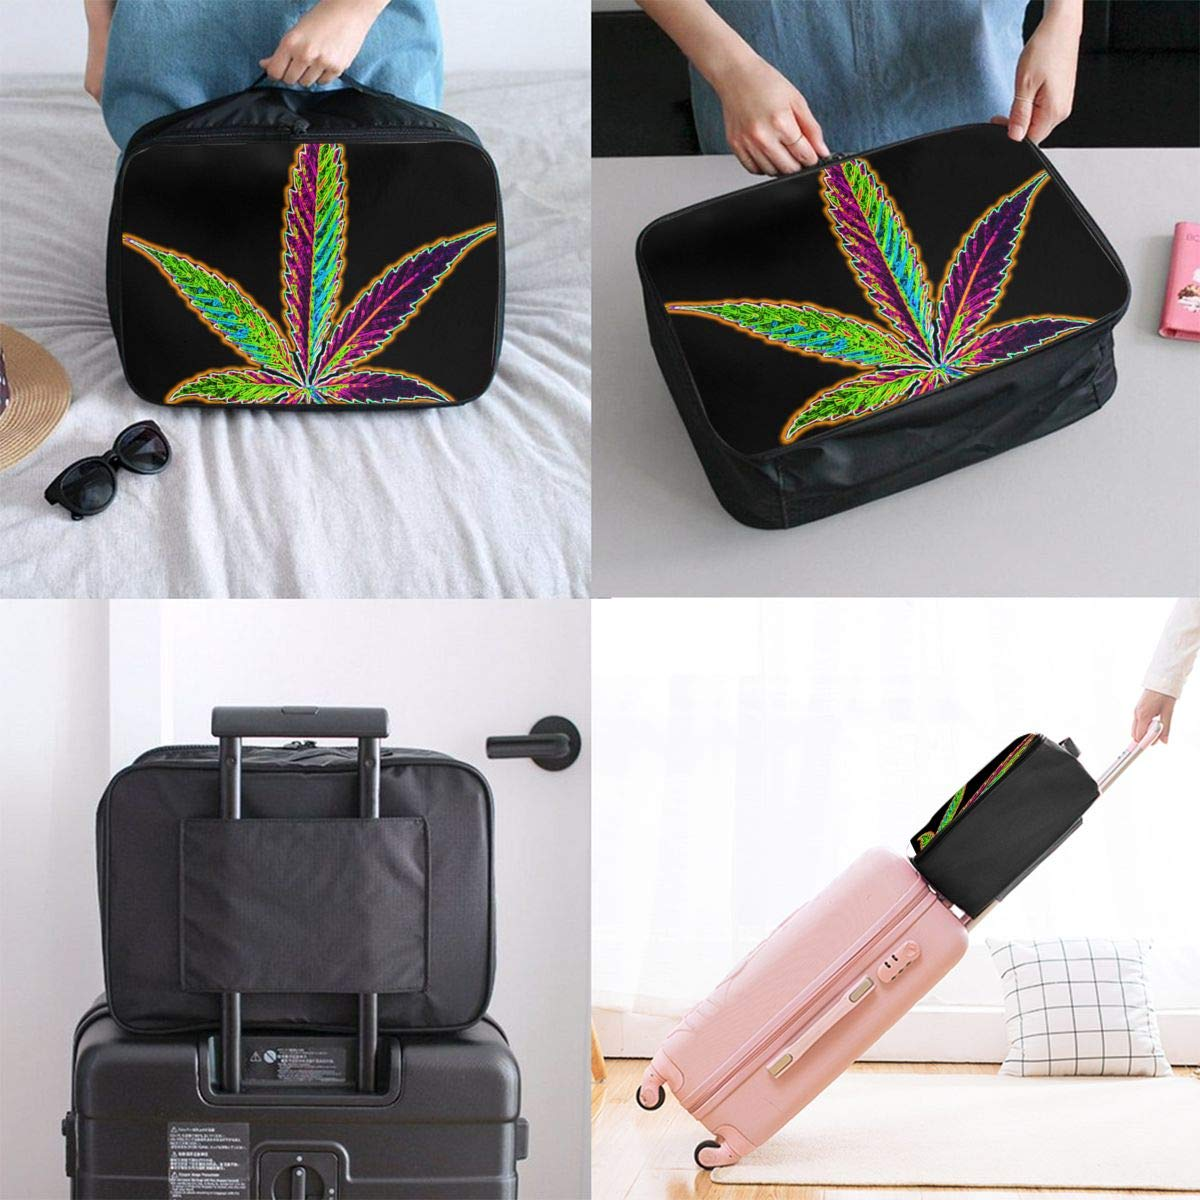 YueLJB Cannabis Marijjuana Leaf Bright Lightweight Large Capacity Portable Luggage Bag Travel Duffel Bag Storage Carry Luggage Duffle Tote Bag